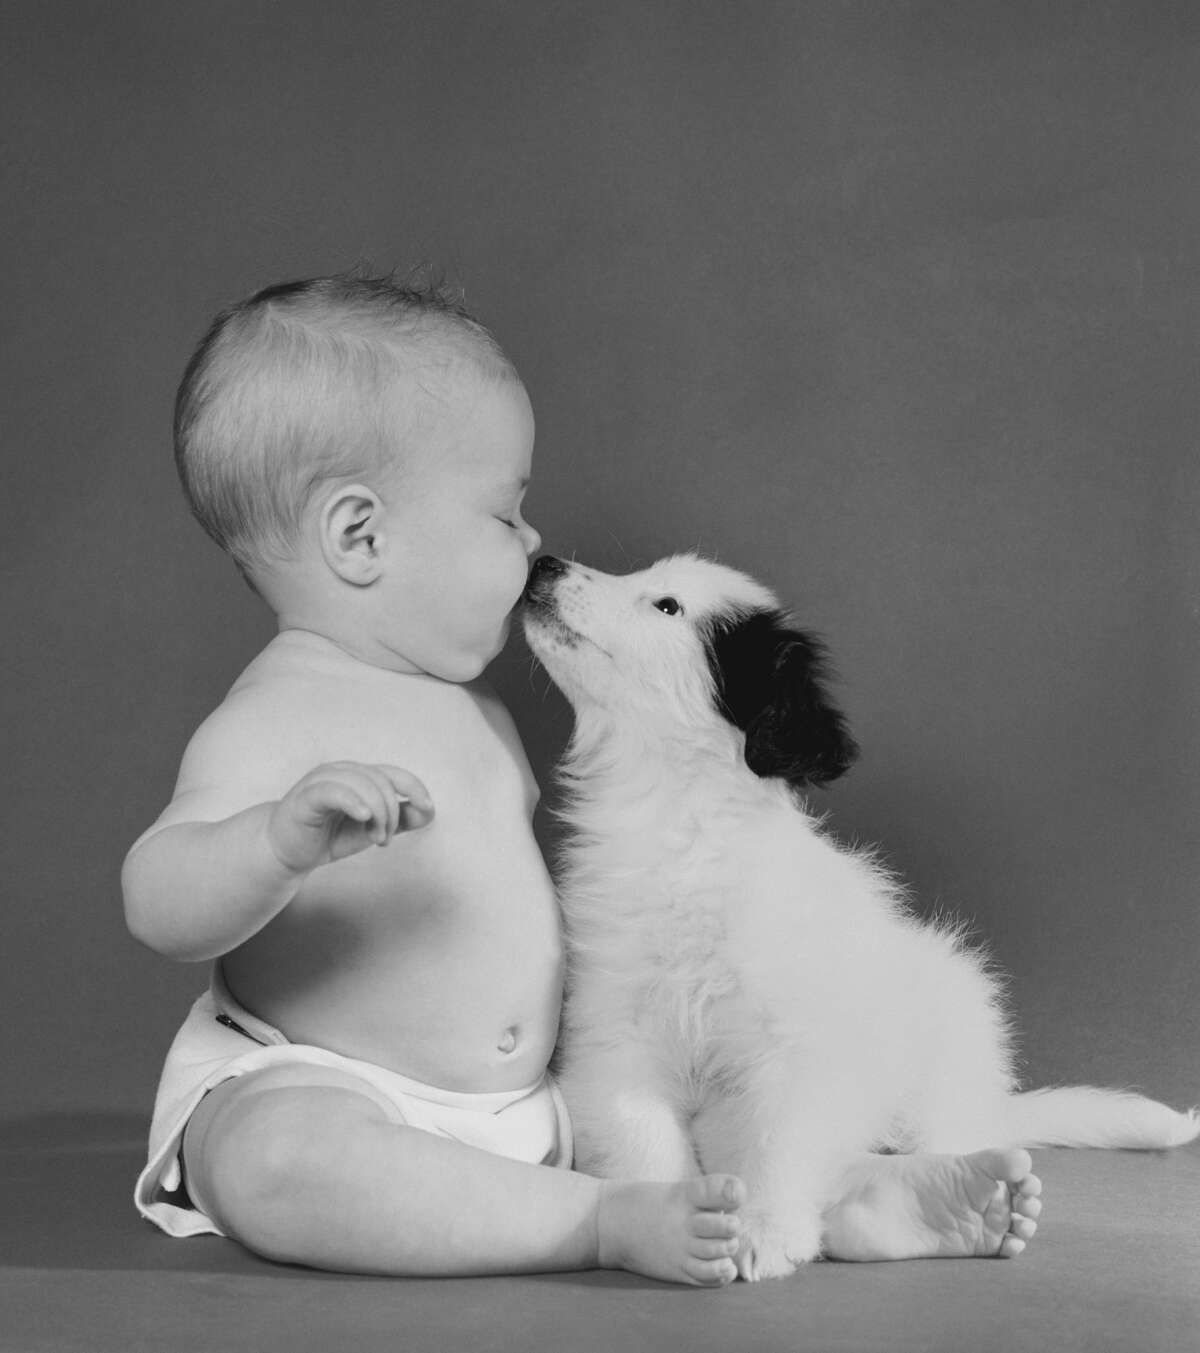 Springtime has long passed us and adorable baby portraits are making their rounds. The only thing cuter than a baby photo, is a baby photo paired with their family dog.